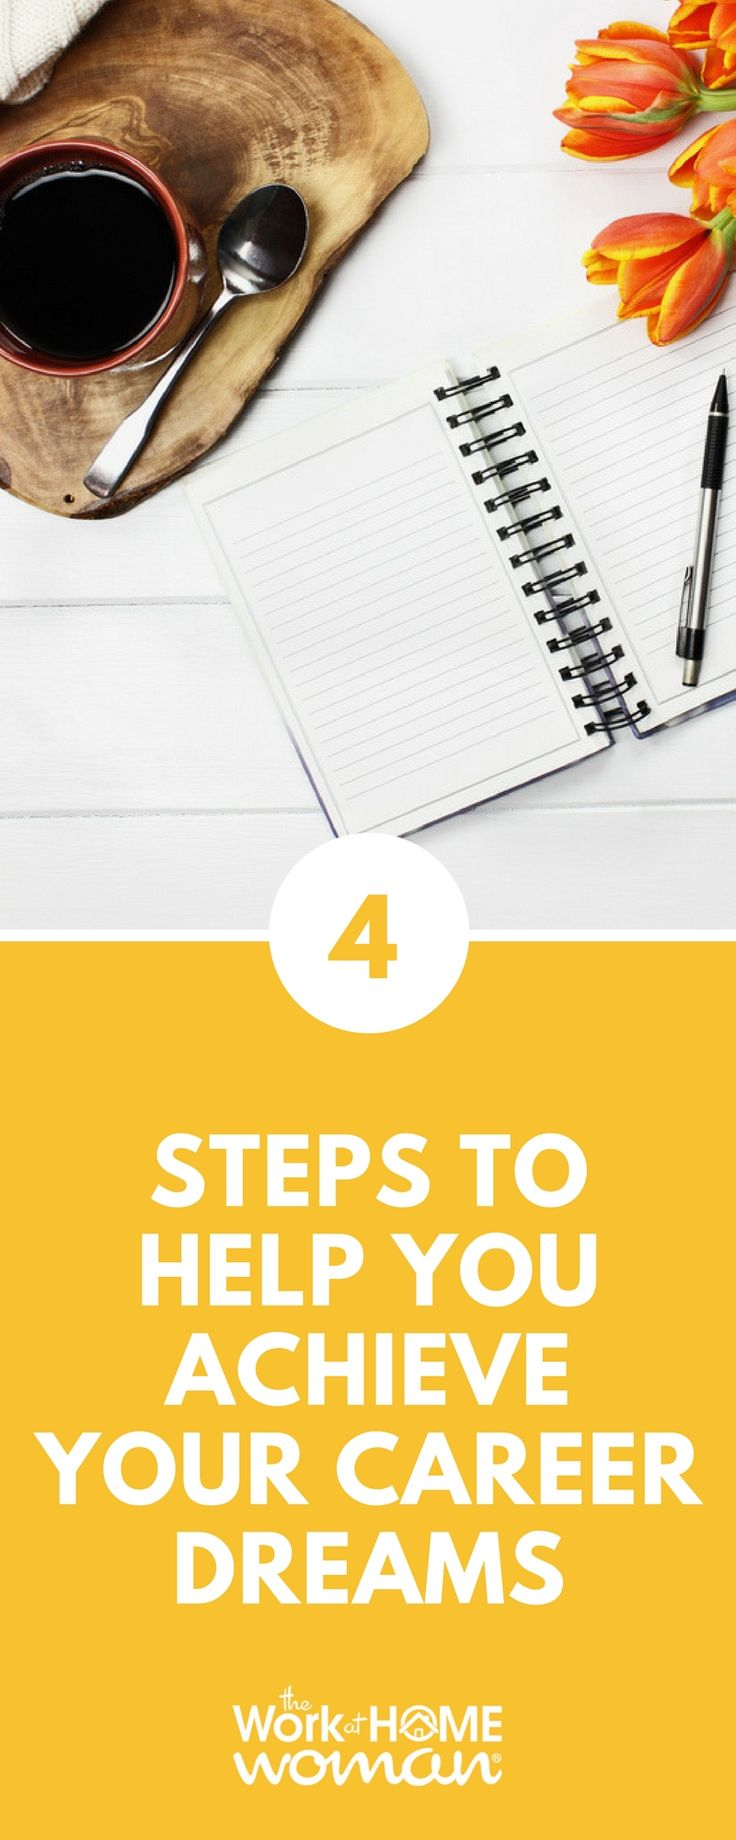 my career goals and dreams If you are writing a career goals essay, read on to learn how many graduate and undergraduate programs require an essay on your life, personal interests and career goals for me, i can easily articulate my goals in a few sentences.